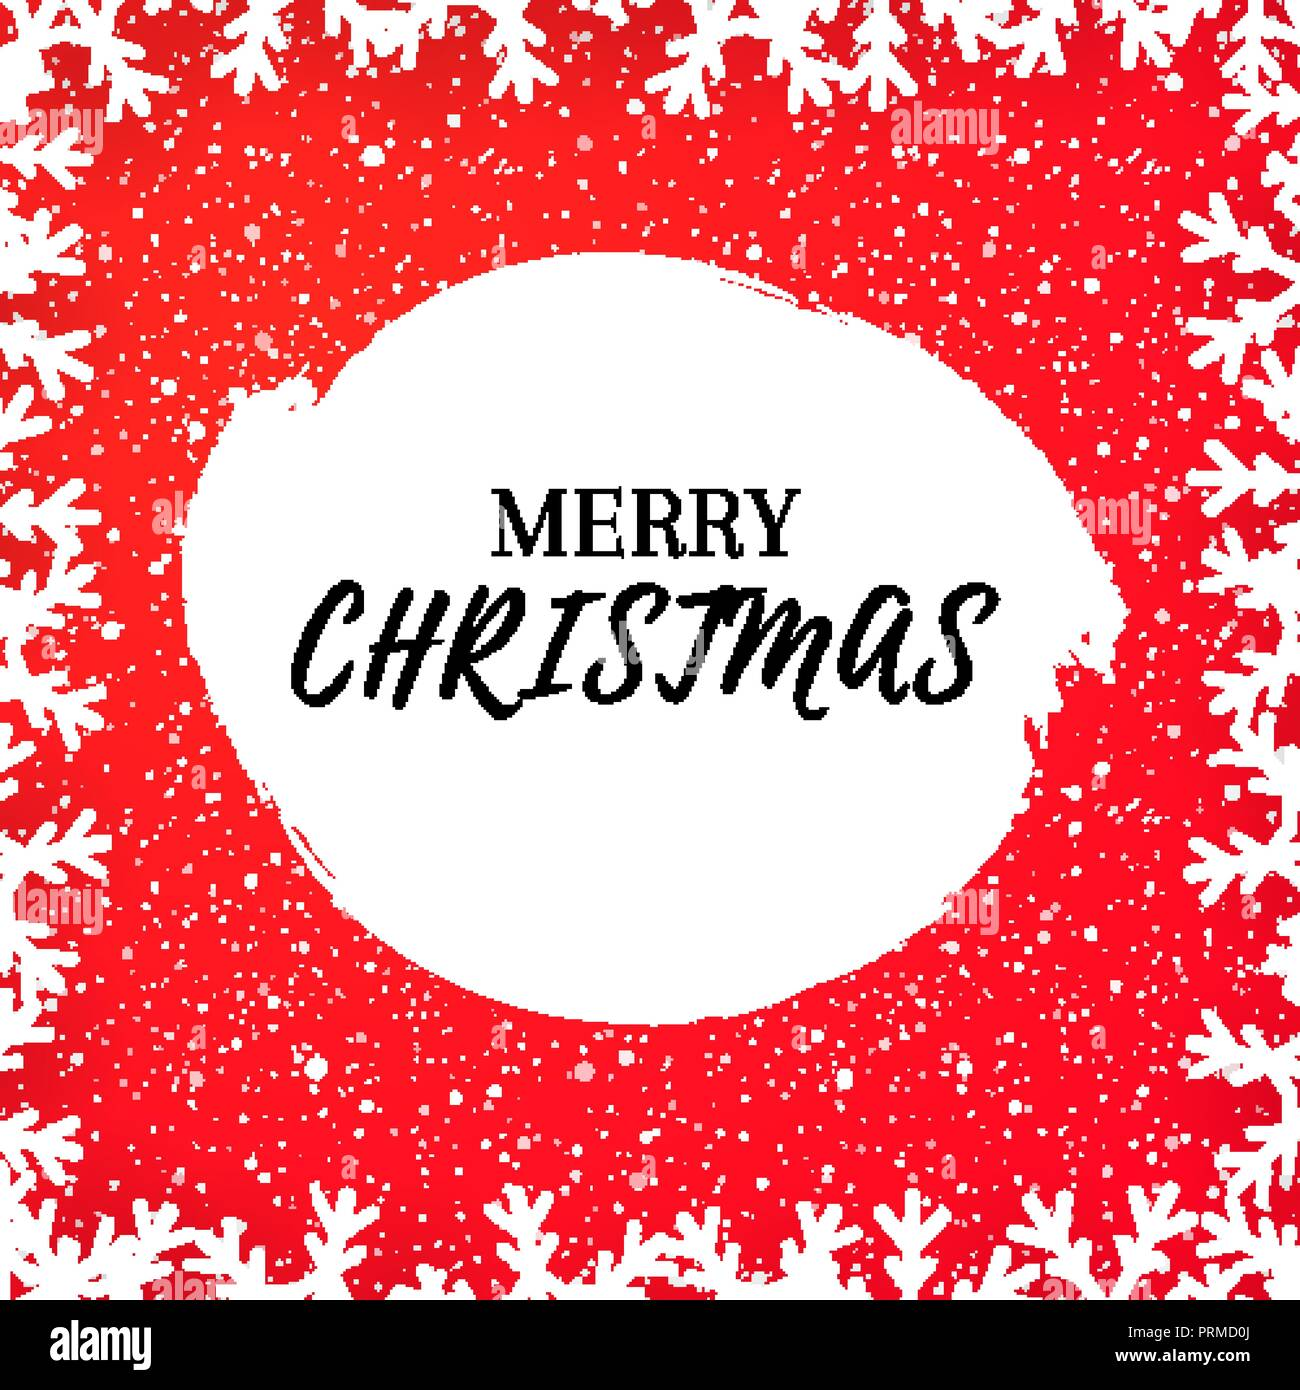 christmas greeting card template with falling snow and snowflake